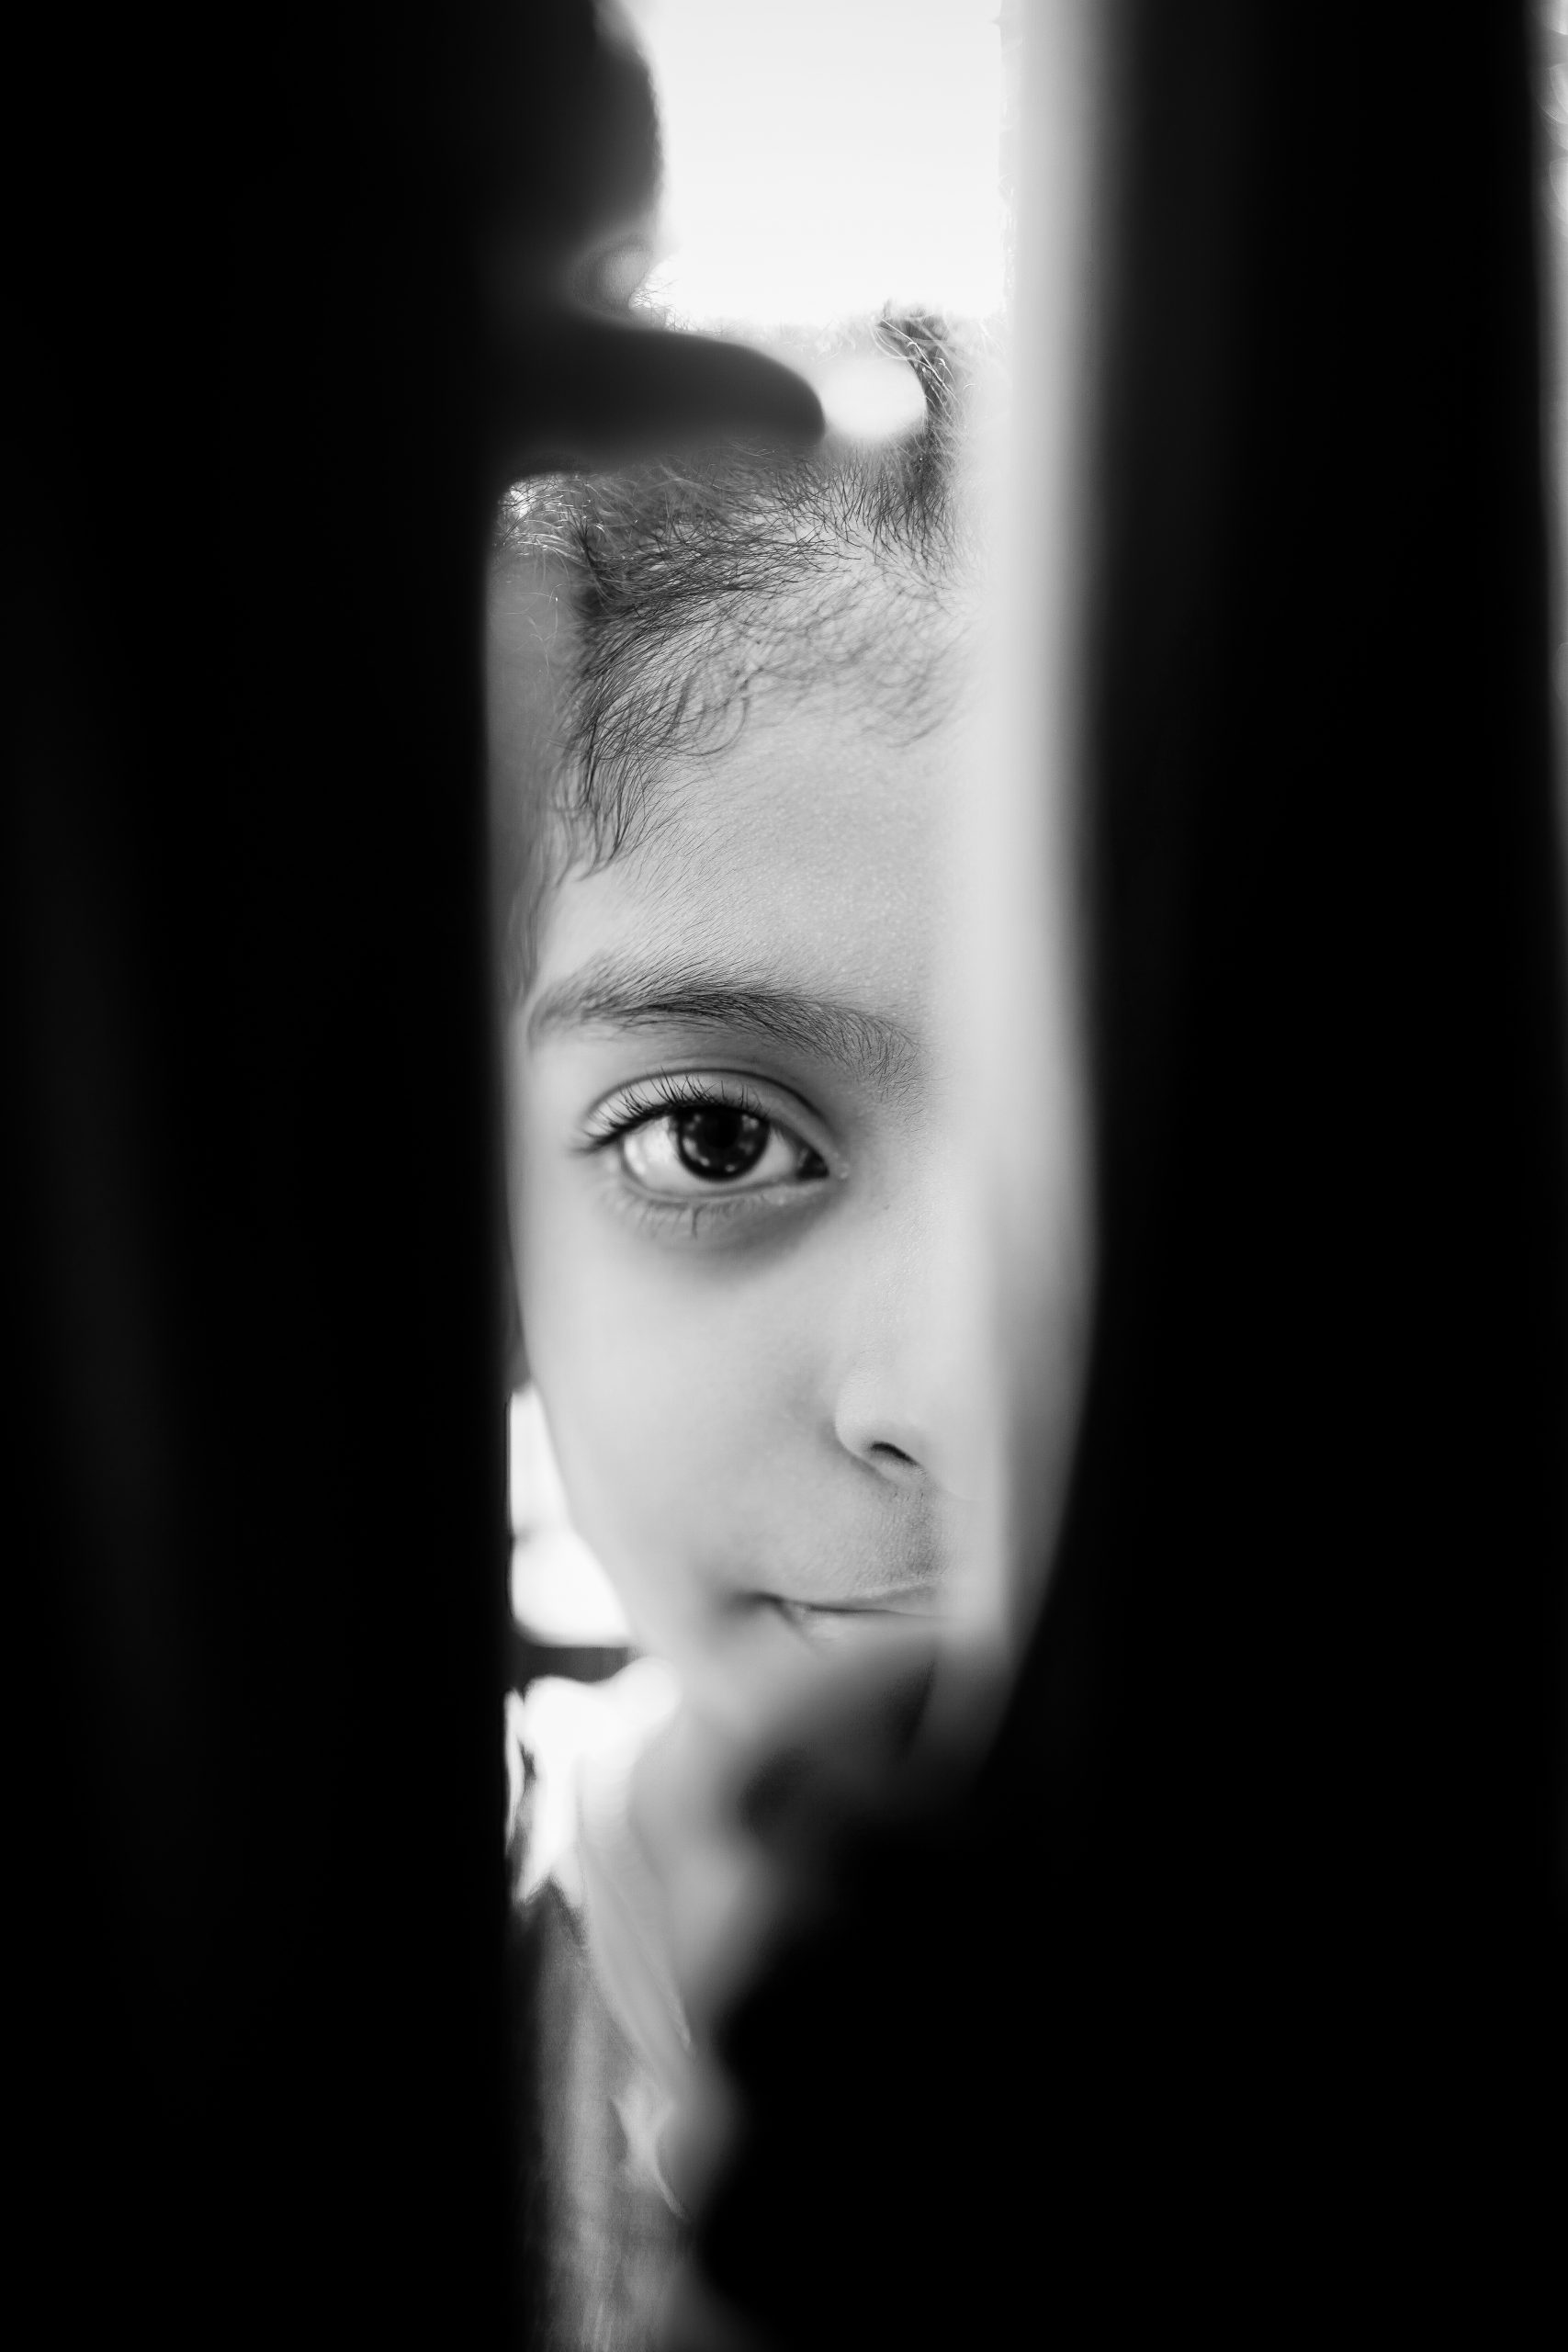 Black and white portrait of a child half face